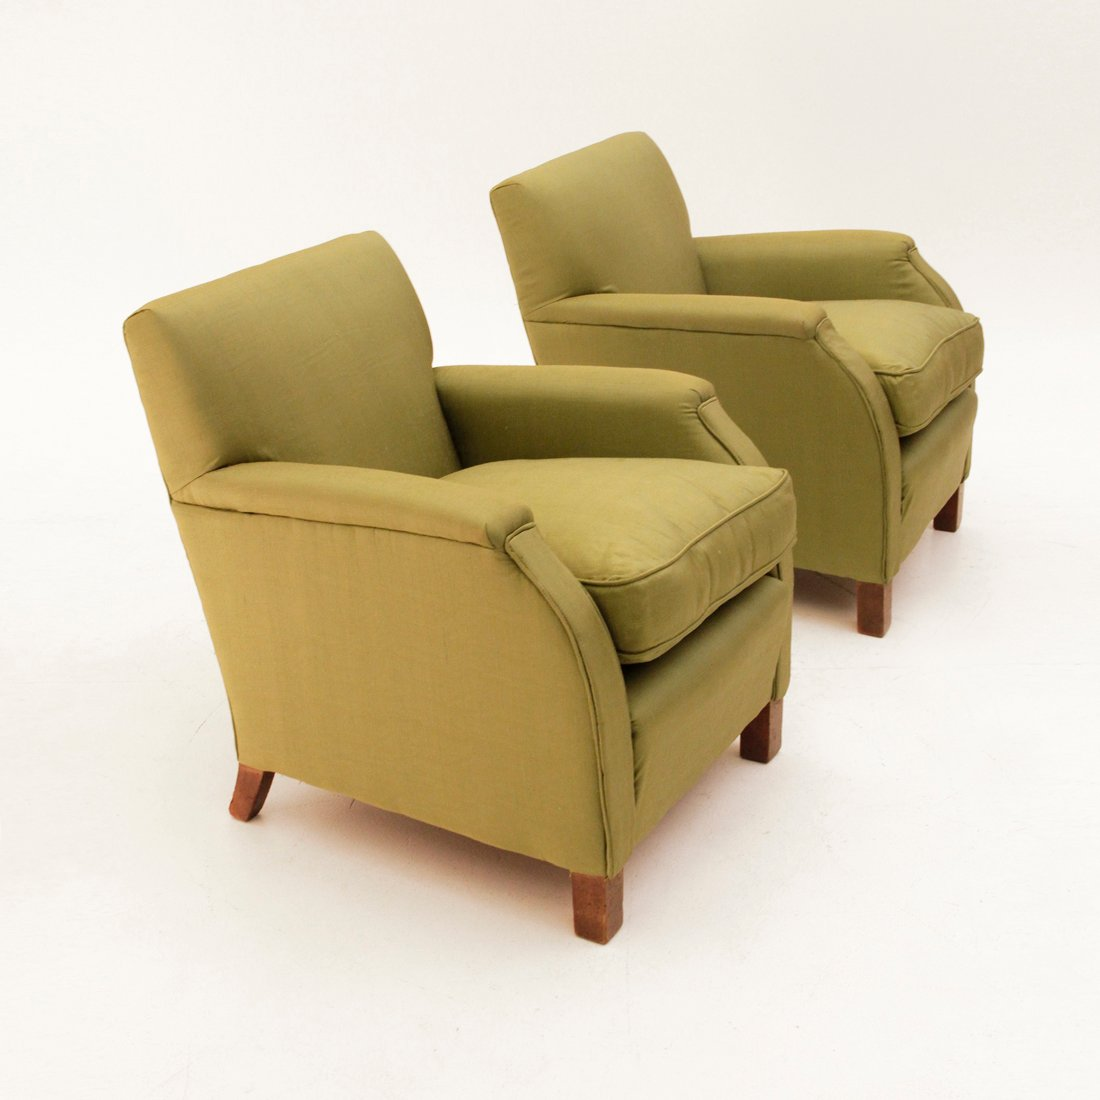 Italian green armchairs 1930s set of 2 for sale at pamono for 2 armchairs for sale